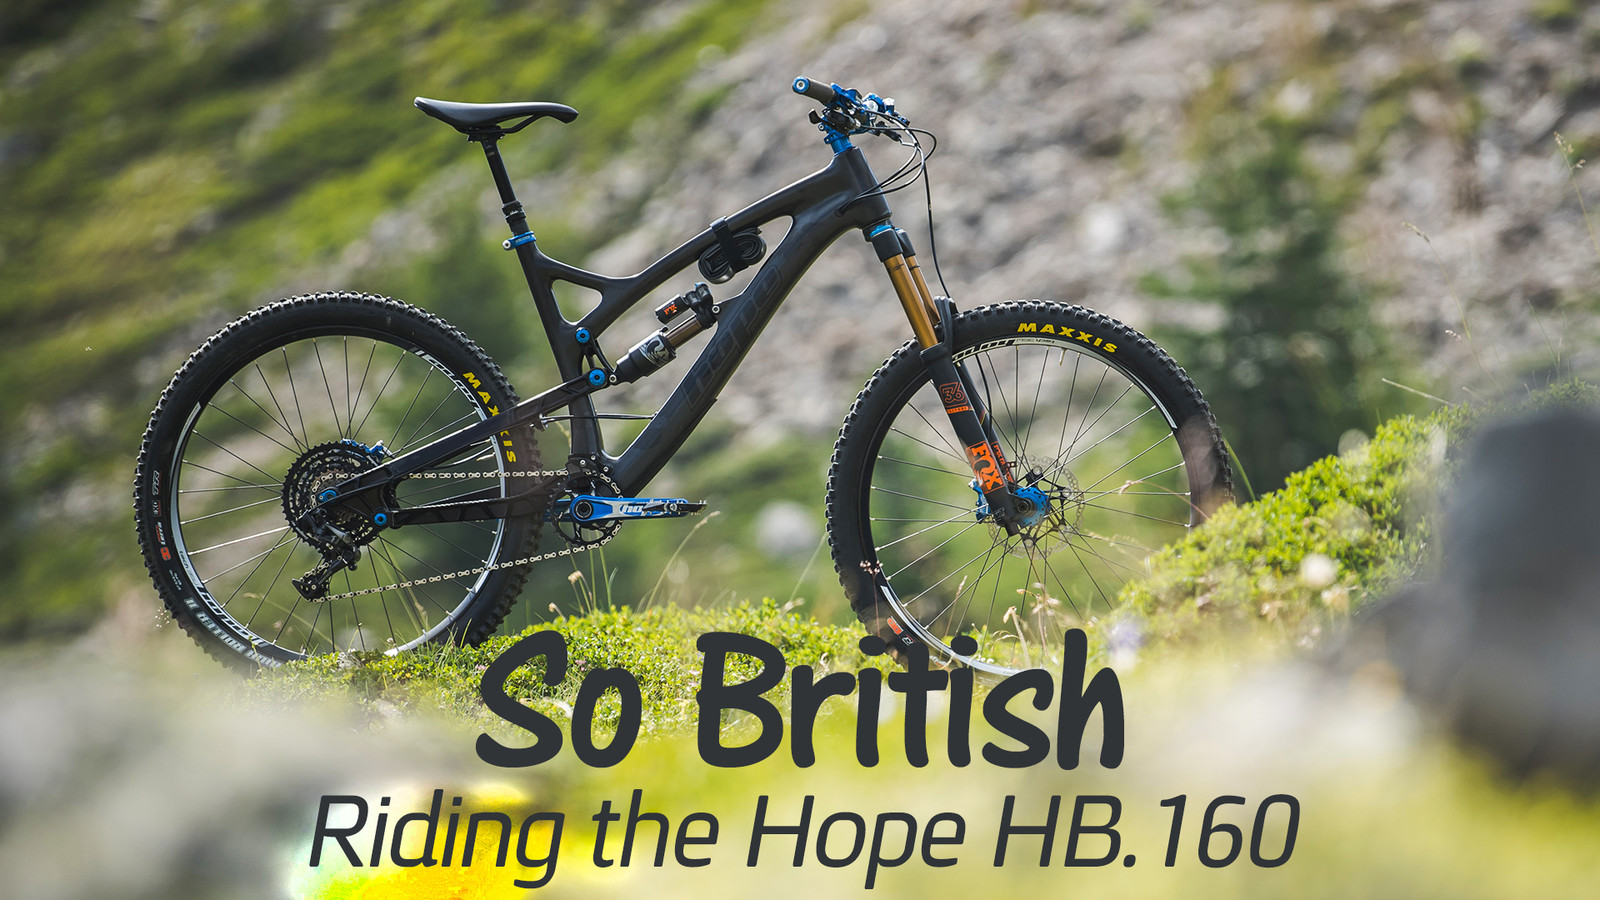 So British | Riding the Hope HB.160